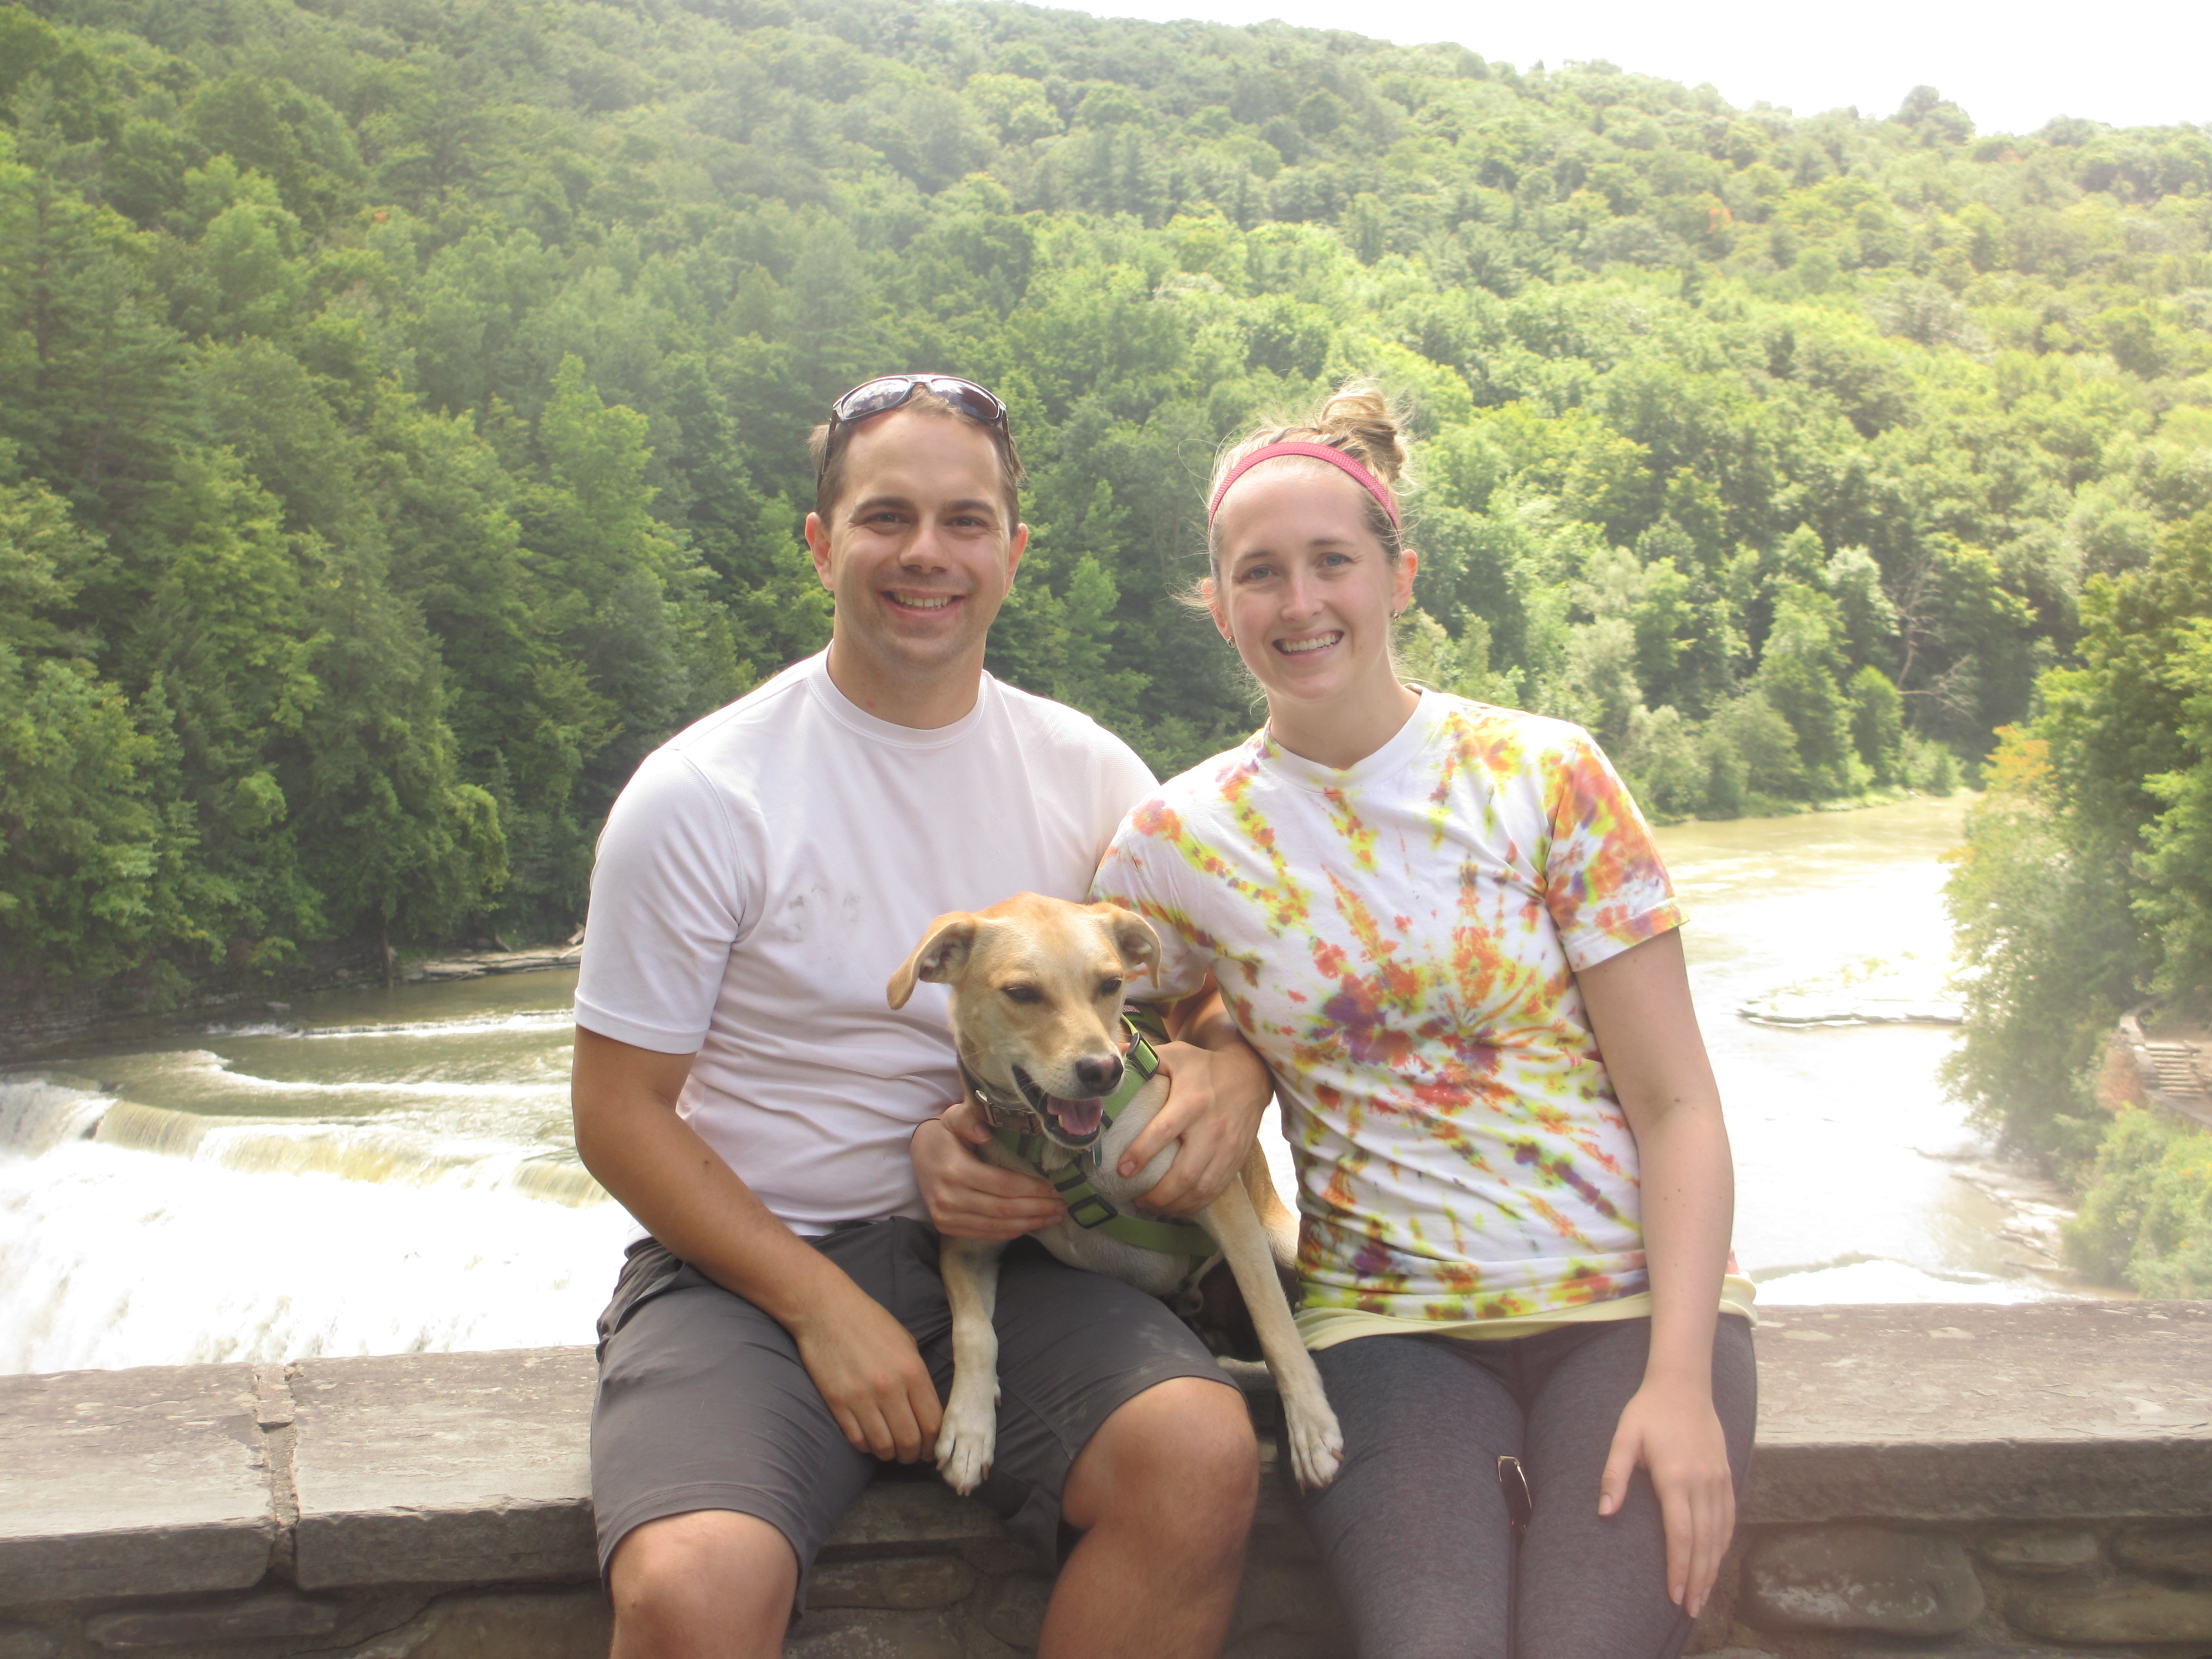 Chad and Elle Woodworth, with their dog, Alfie, have enjoyed hiking at Letchworth State Park as they've explored Western New York.